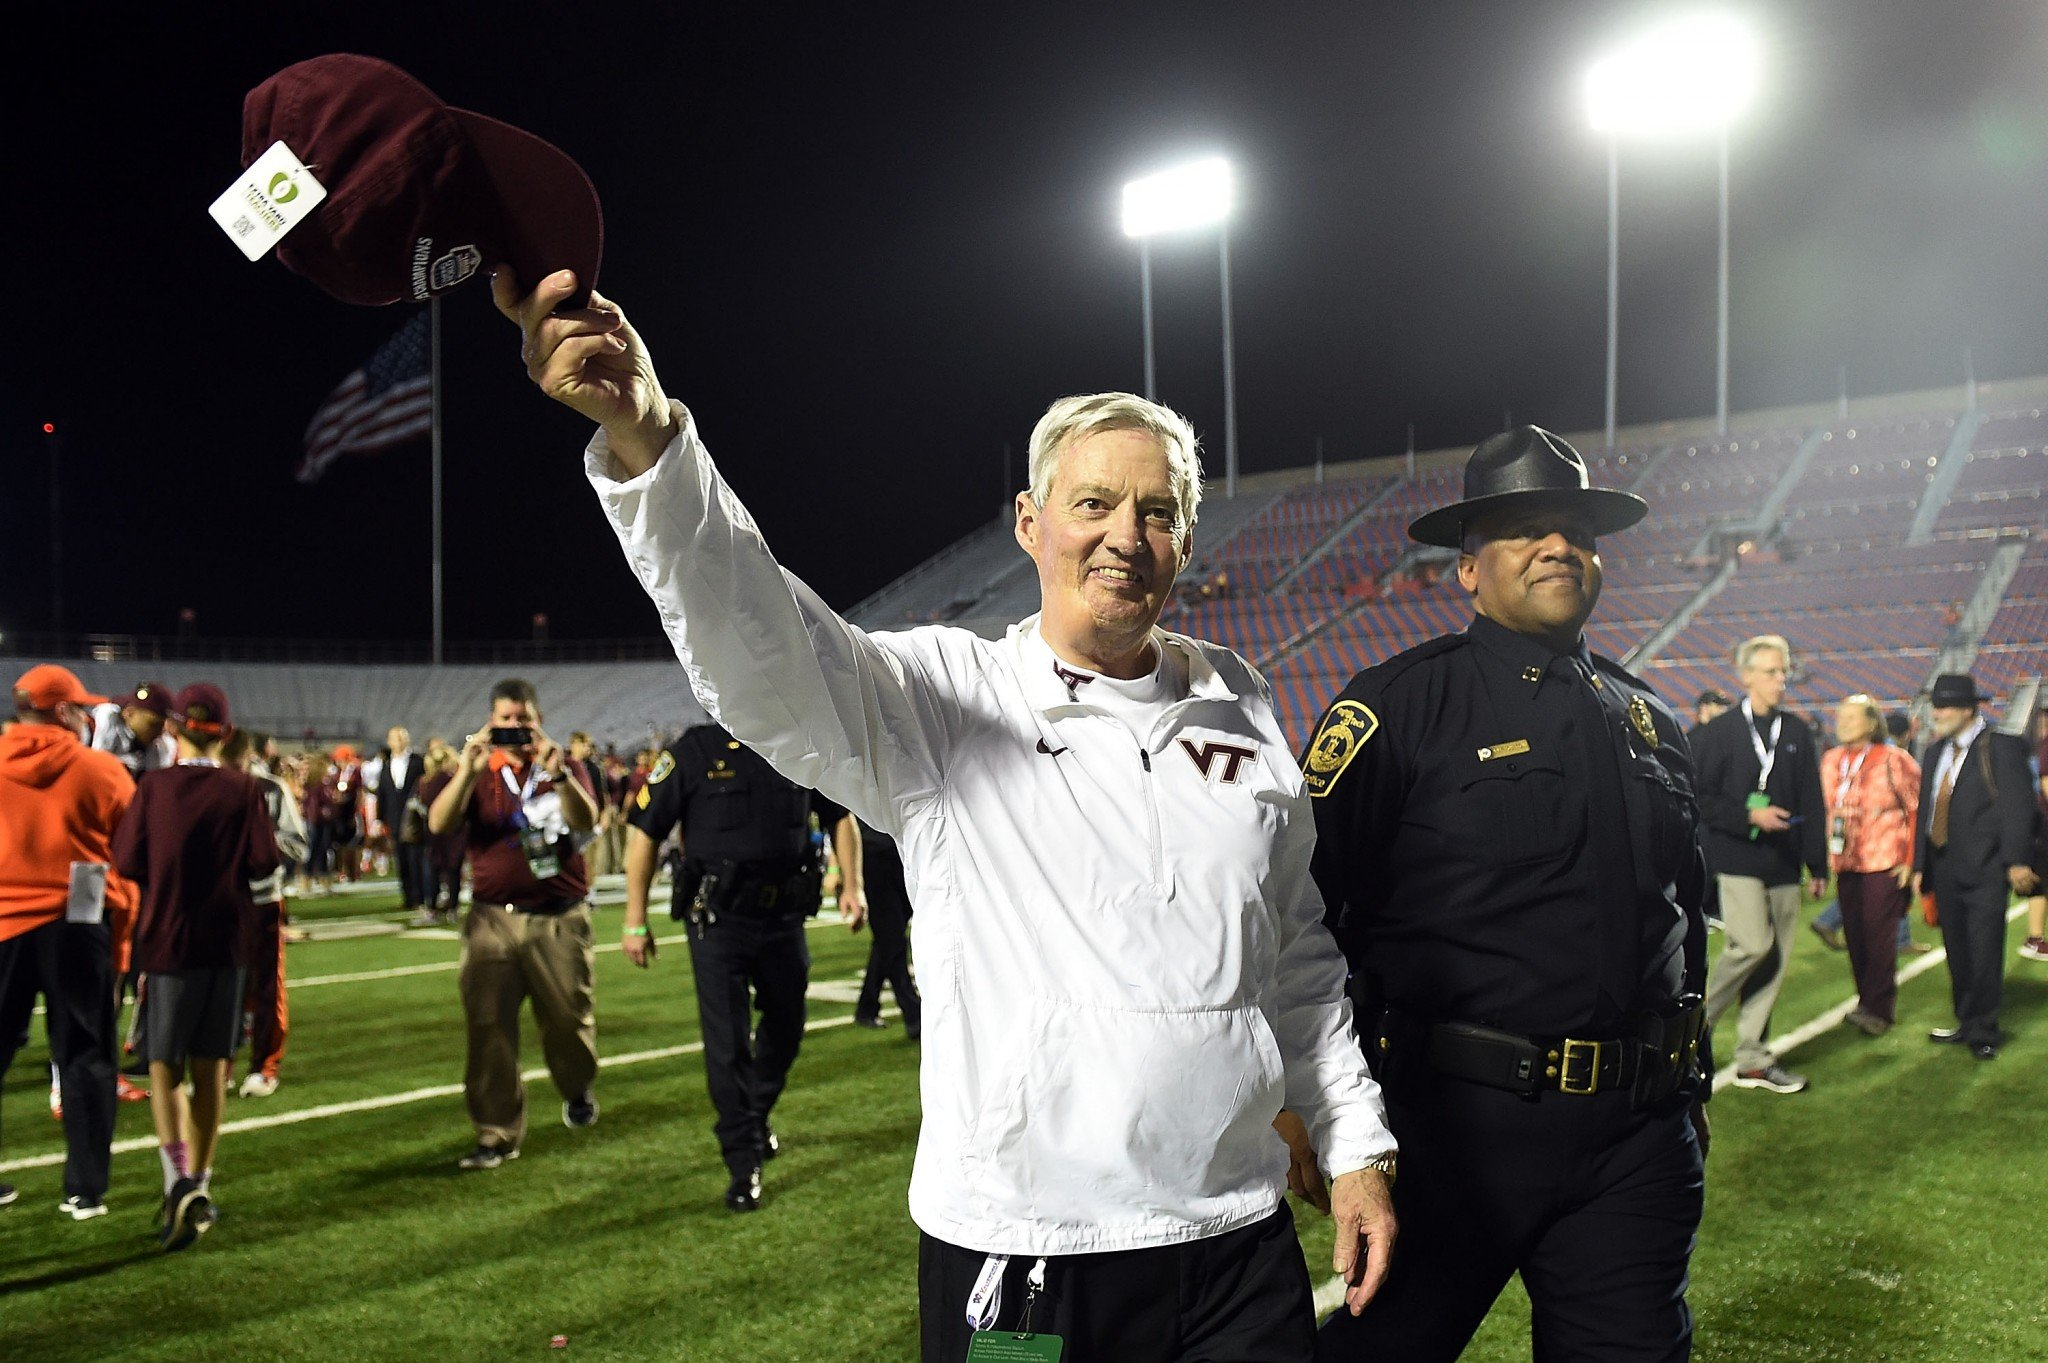 Frank Beamer's retired after the 2015 season. (Getty Images)